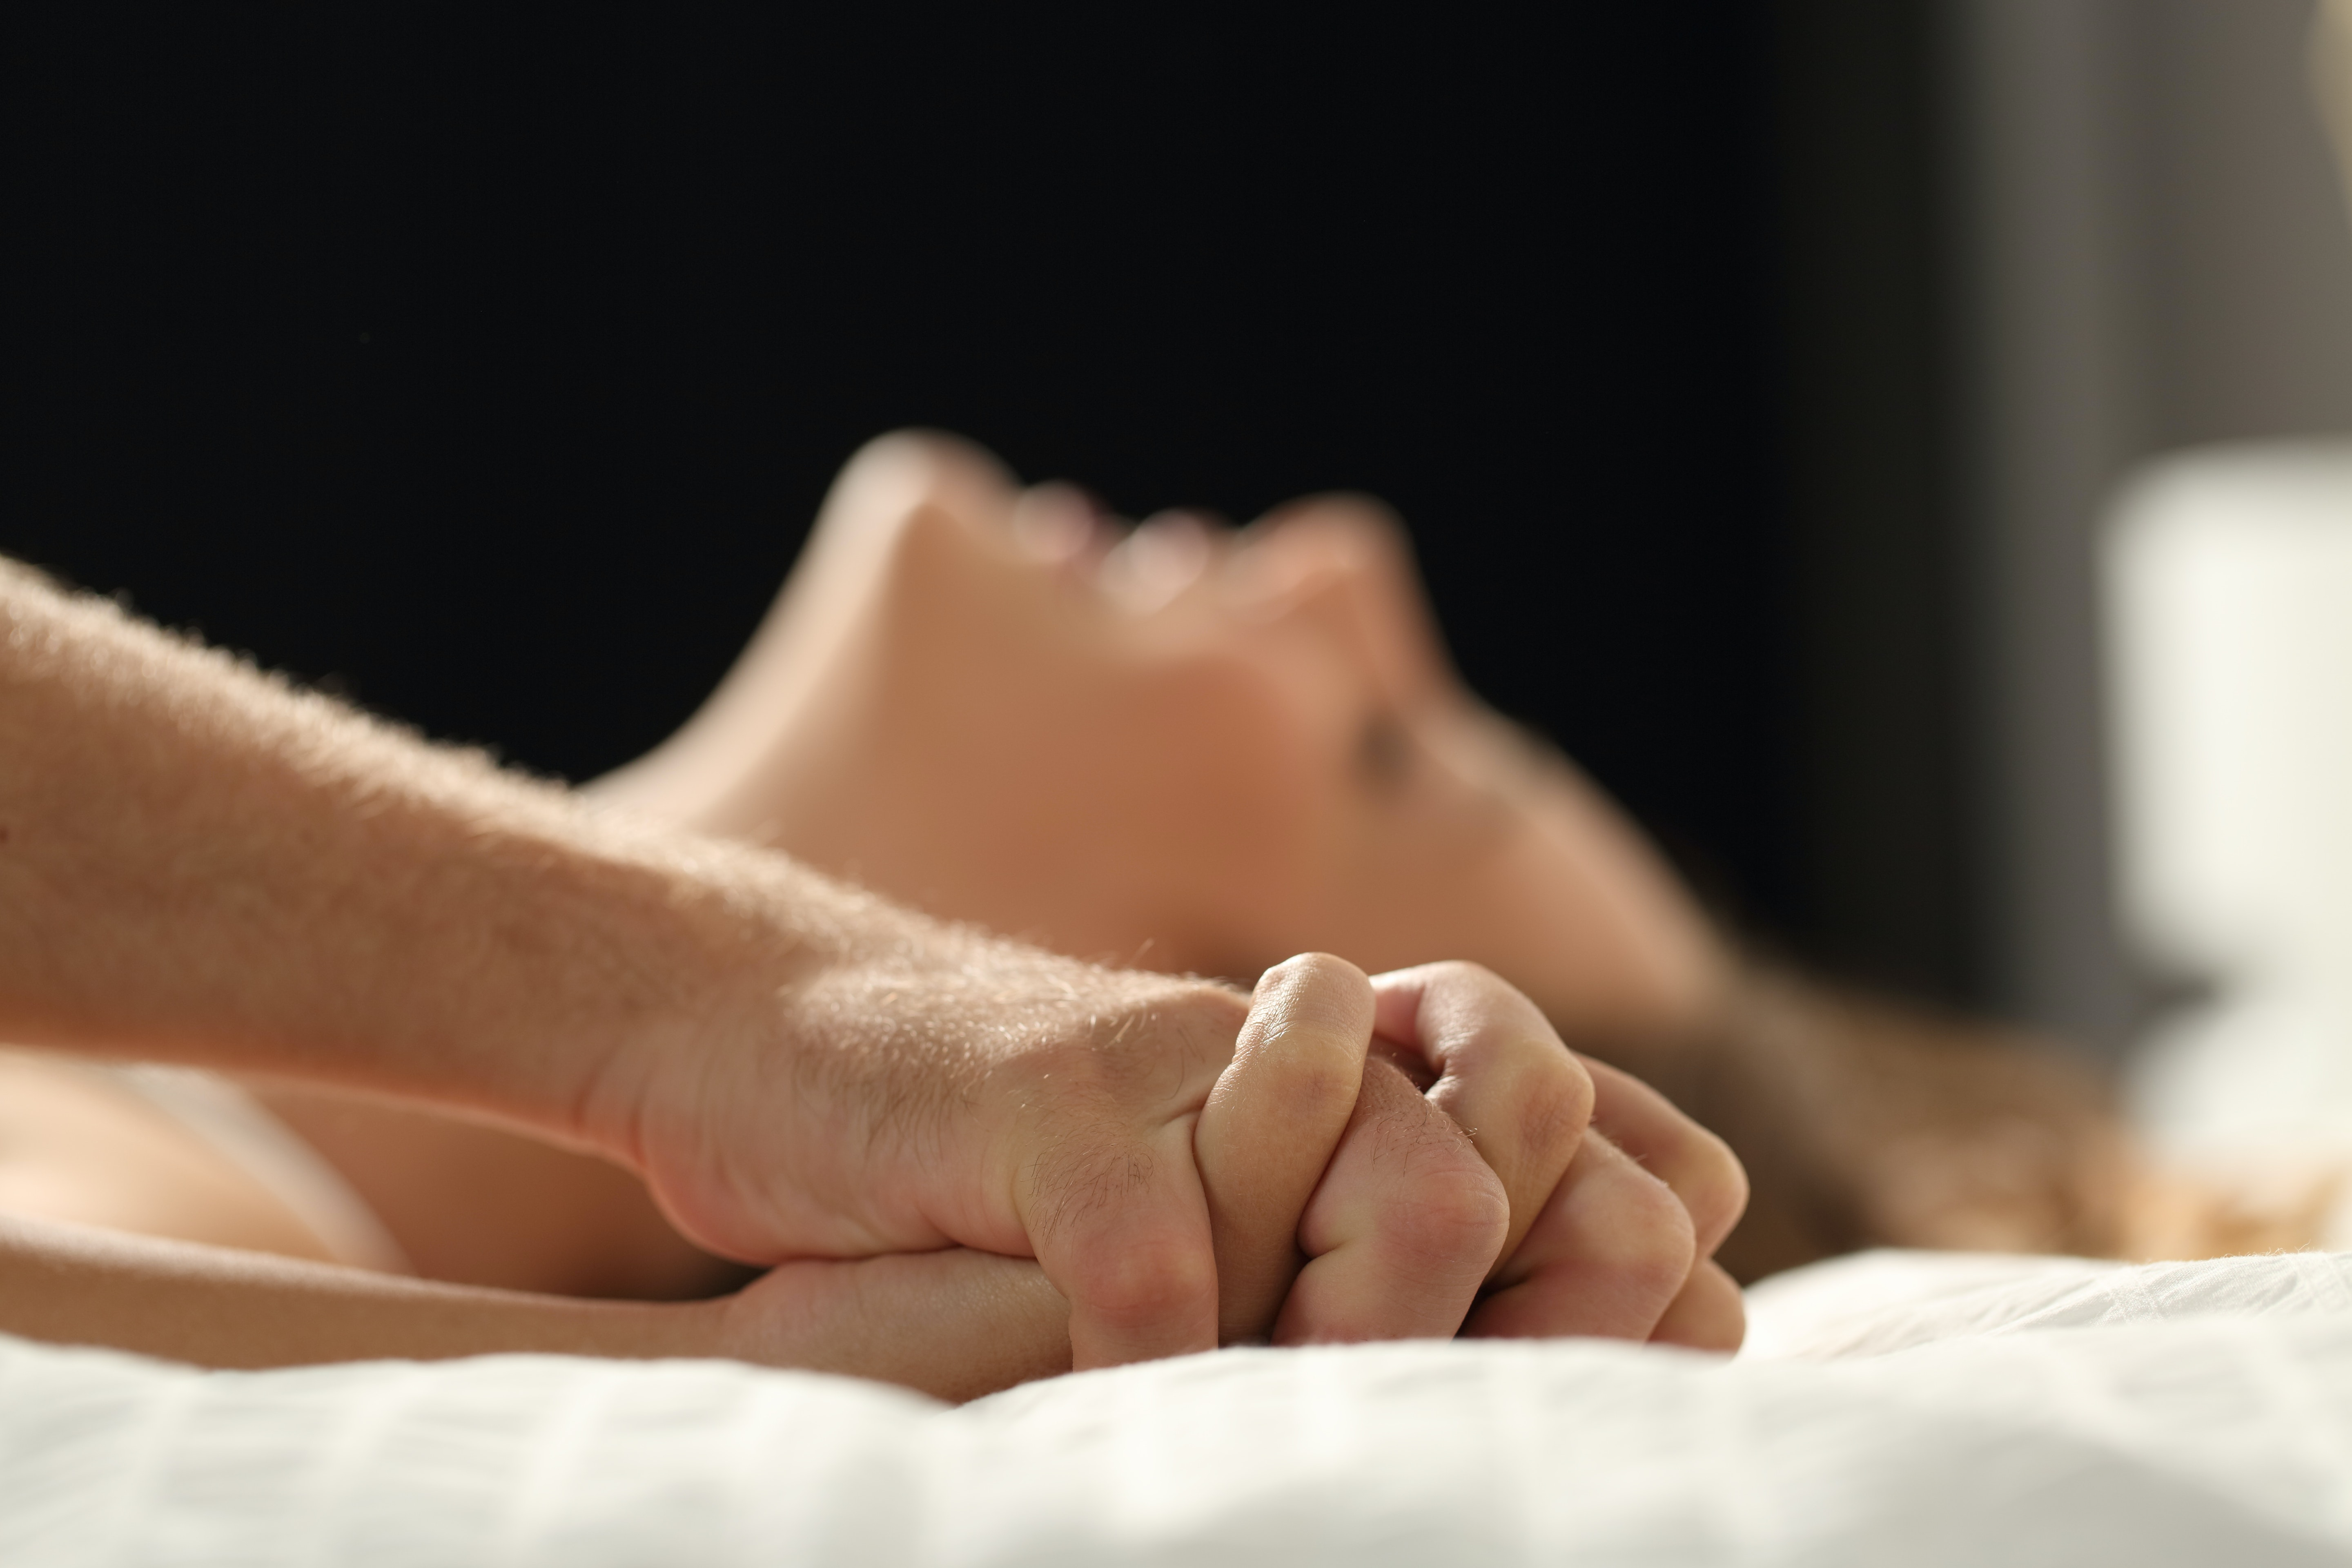 How long should an intercourse last on average, without preludes 14